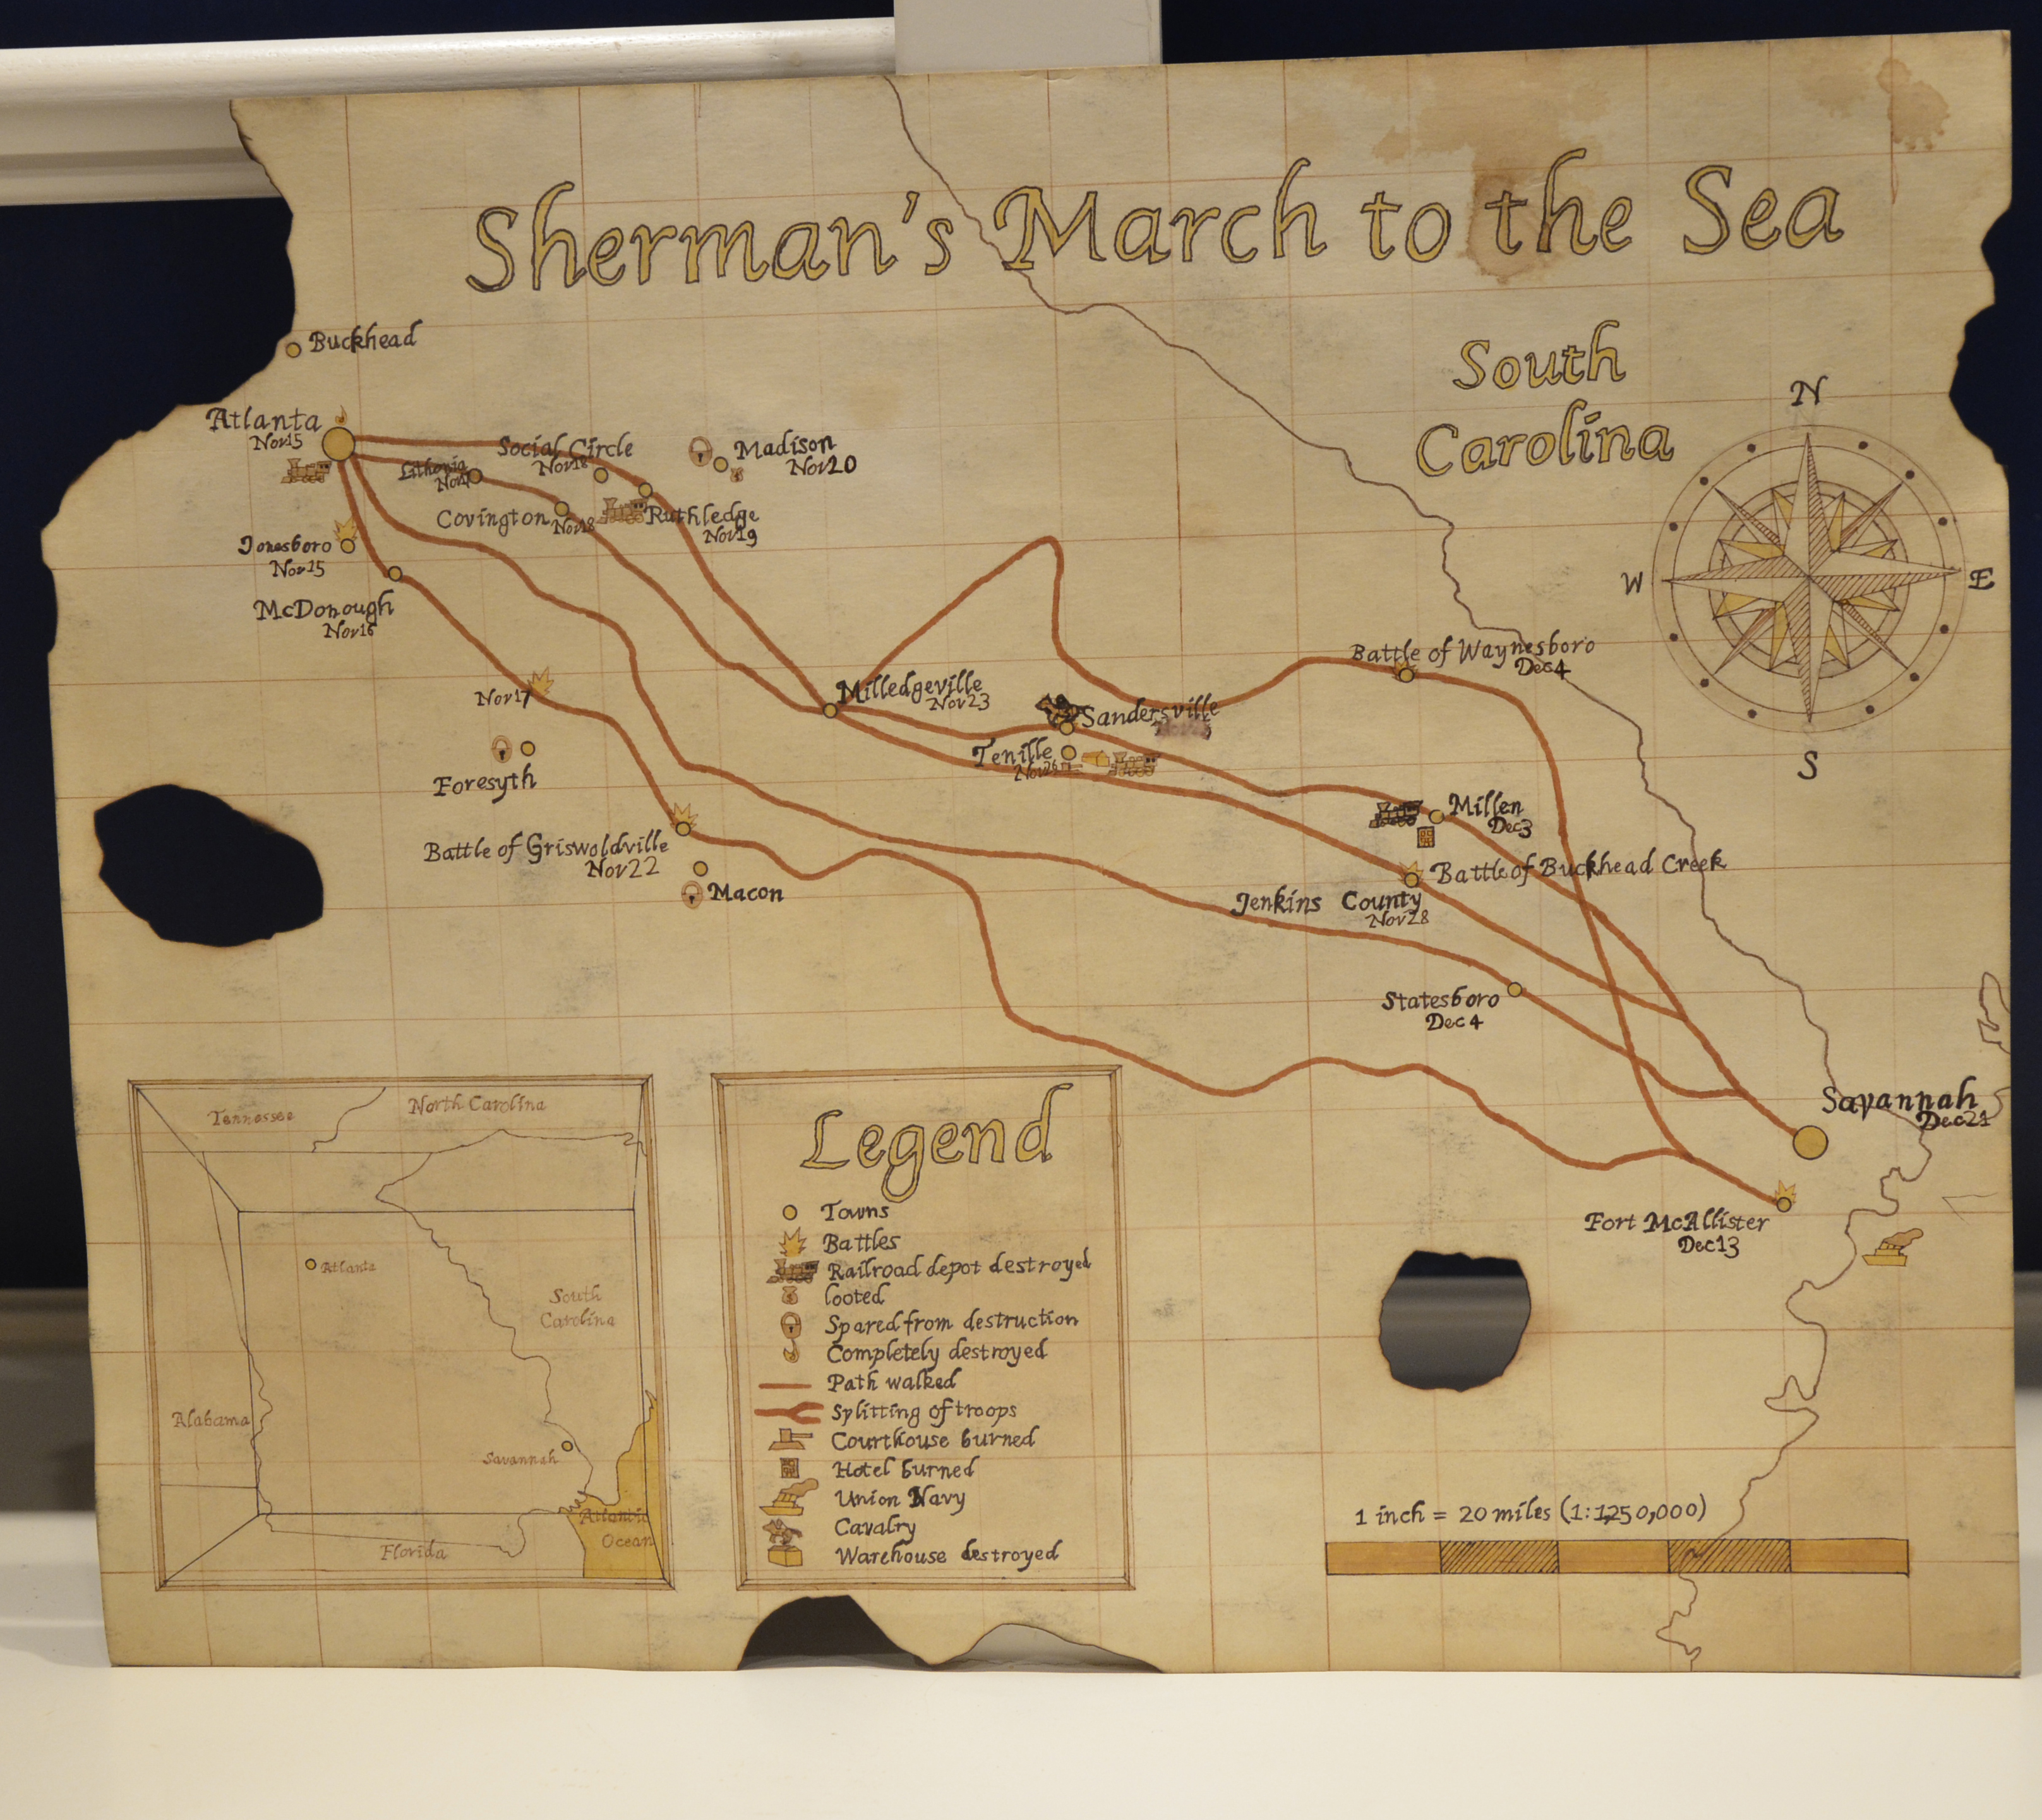 """the details of the infamous shermans march to the sea and its impact • students will be able to provide details of sherman's """"march to the sea"""" in 1864 effectiveness and ethical nature of a total war approach sherman's."""